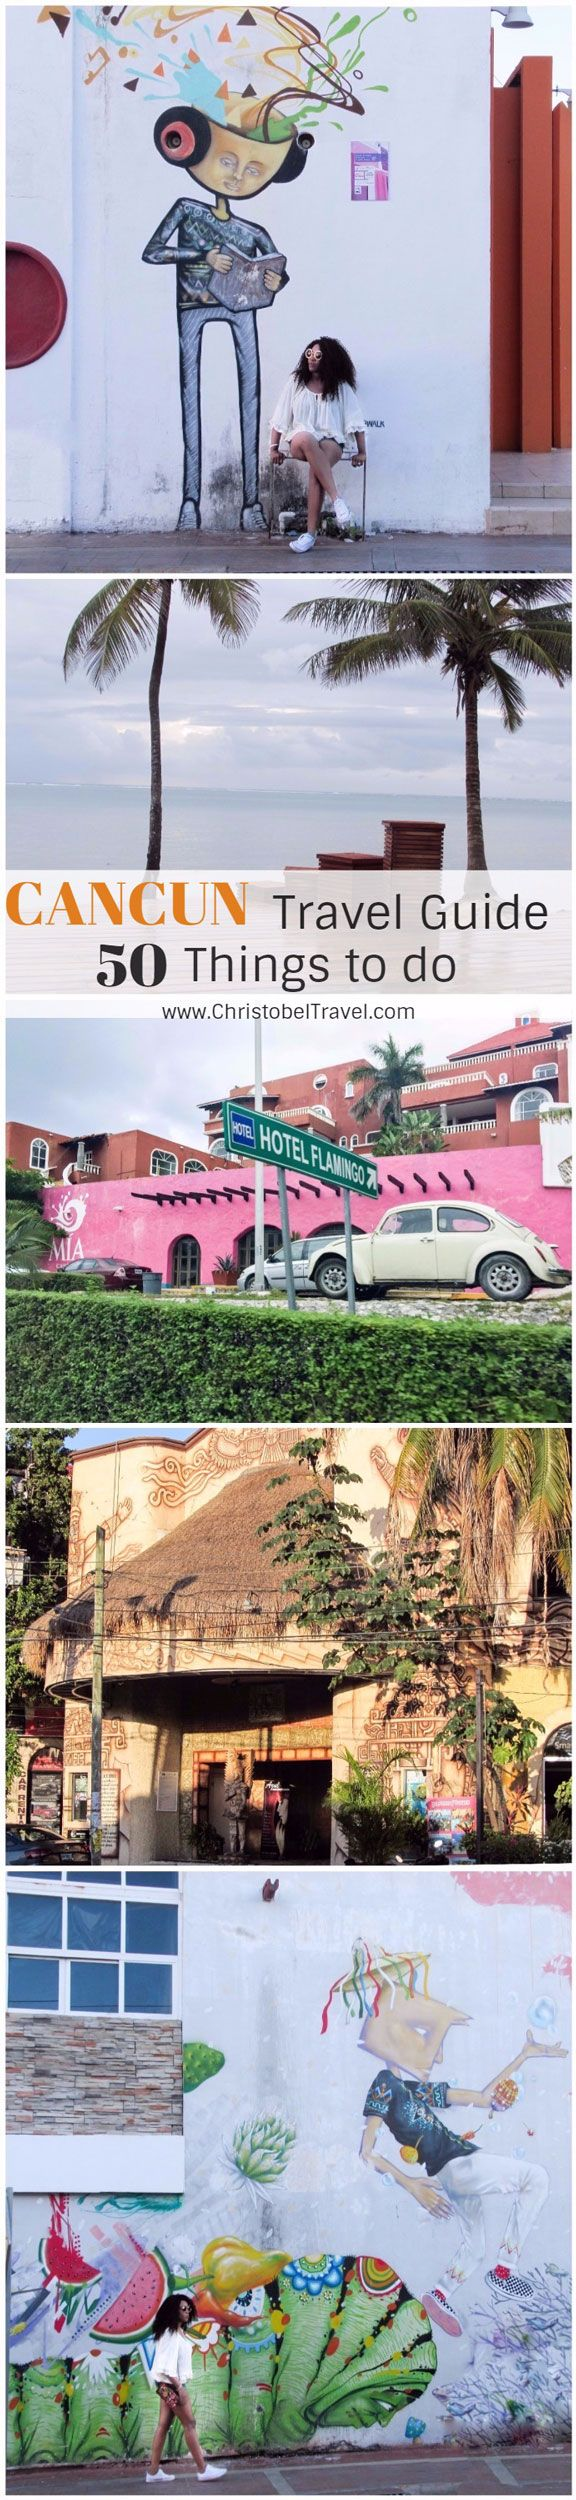 Cancun Travel Guide: 50 Things to do in #Cancun, Yucatan, Mexico. Activities include dolphins, hotel zone area / zona hotelera, downtown quintana roo, nightlife, restaurants, Mayan ruins, shopping, underwater museums & caves, xcaret riviera maya, xplor, yacht to playa del carmen. All inclusive resorts / destination beach weddings, honeymoon & engagements. Excursions / Day trips to Chichen Itza & Cenote Ik Kil. Explore family vacations, girls trip ideas, tips, photography #christobeltravel